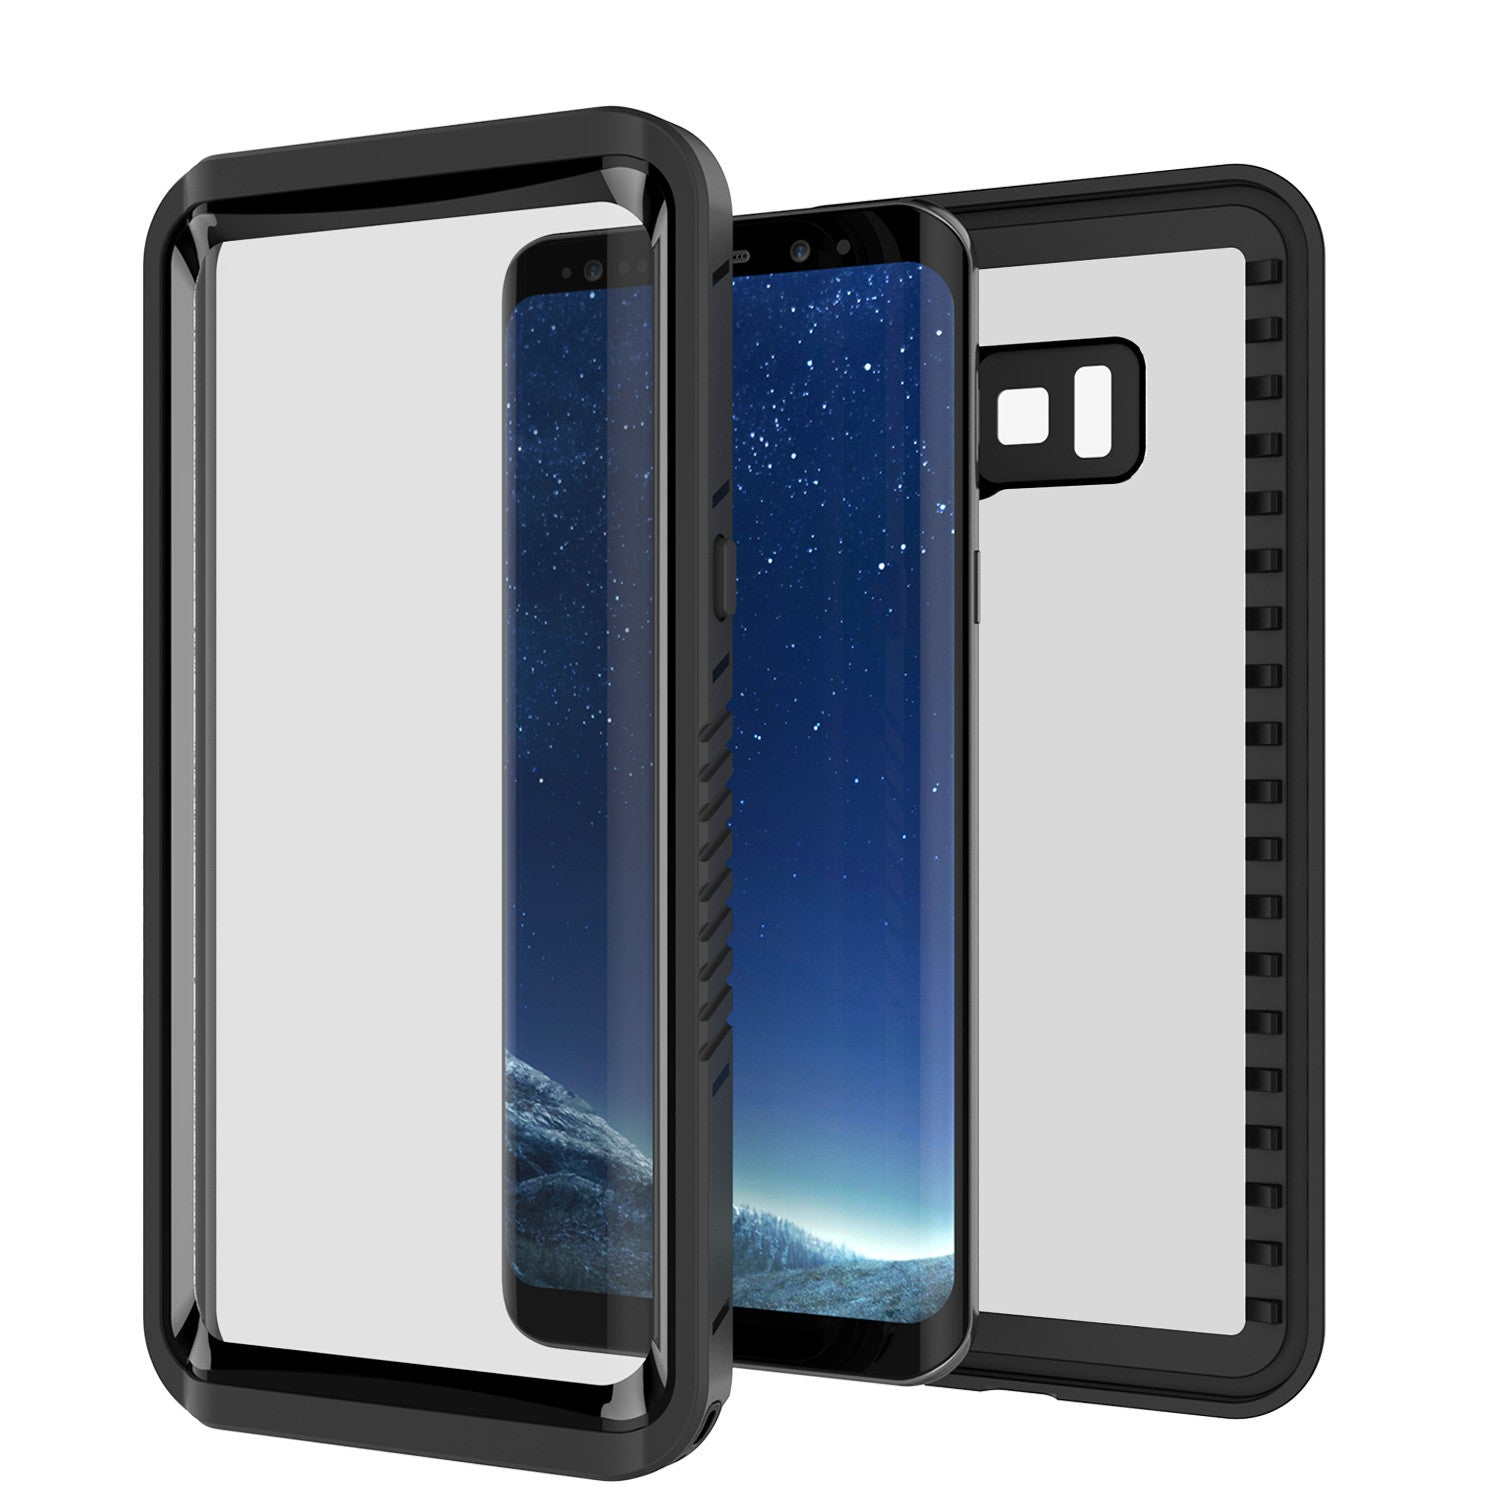 Galaxy S8 PLUS Waterproof Case, Punkcase [Extreme Series] [Slim Fit] [IP68 Certified] [Shockproof] [Snowproof] [Dirproof] Armor Cover W/ Built In Screen Protector for Samsung Galaxy S8+ [Black]